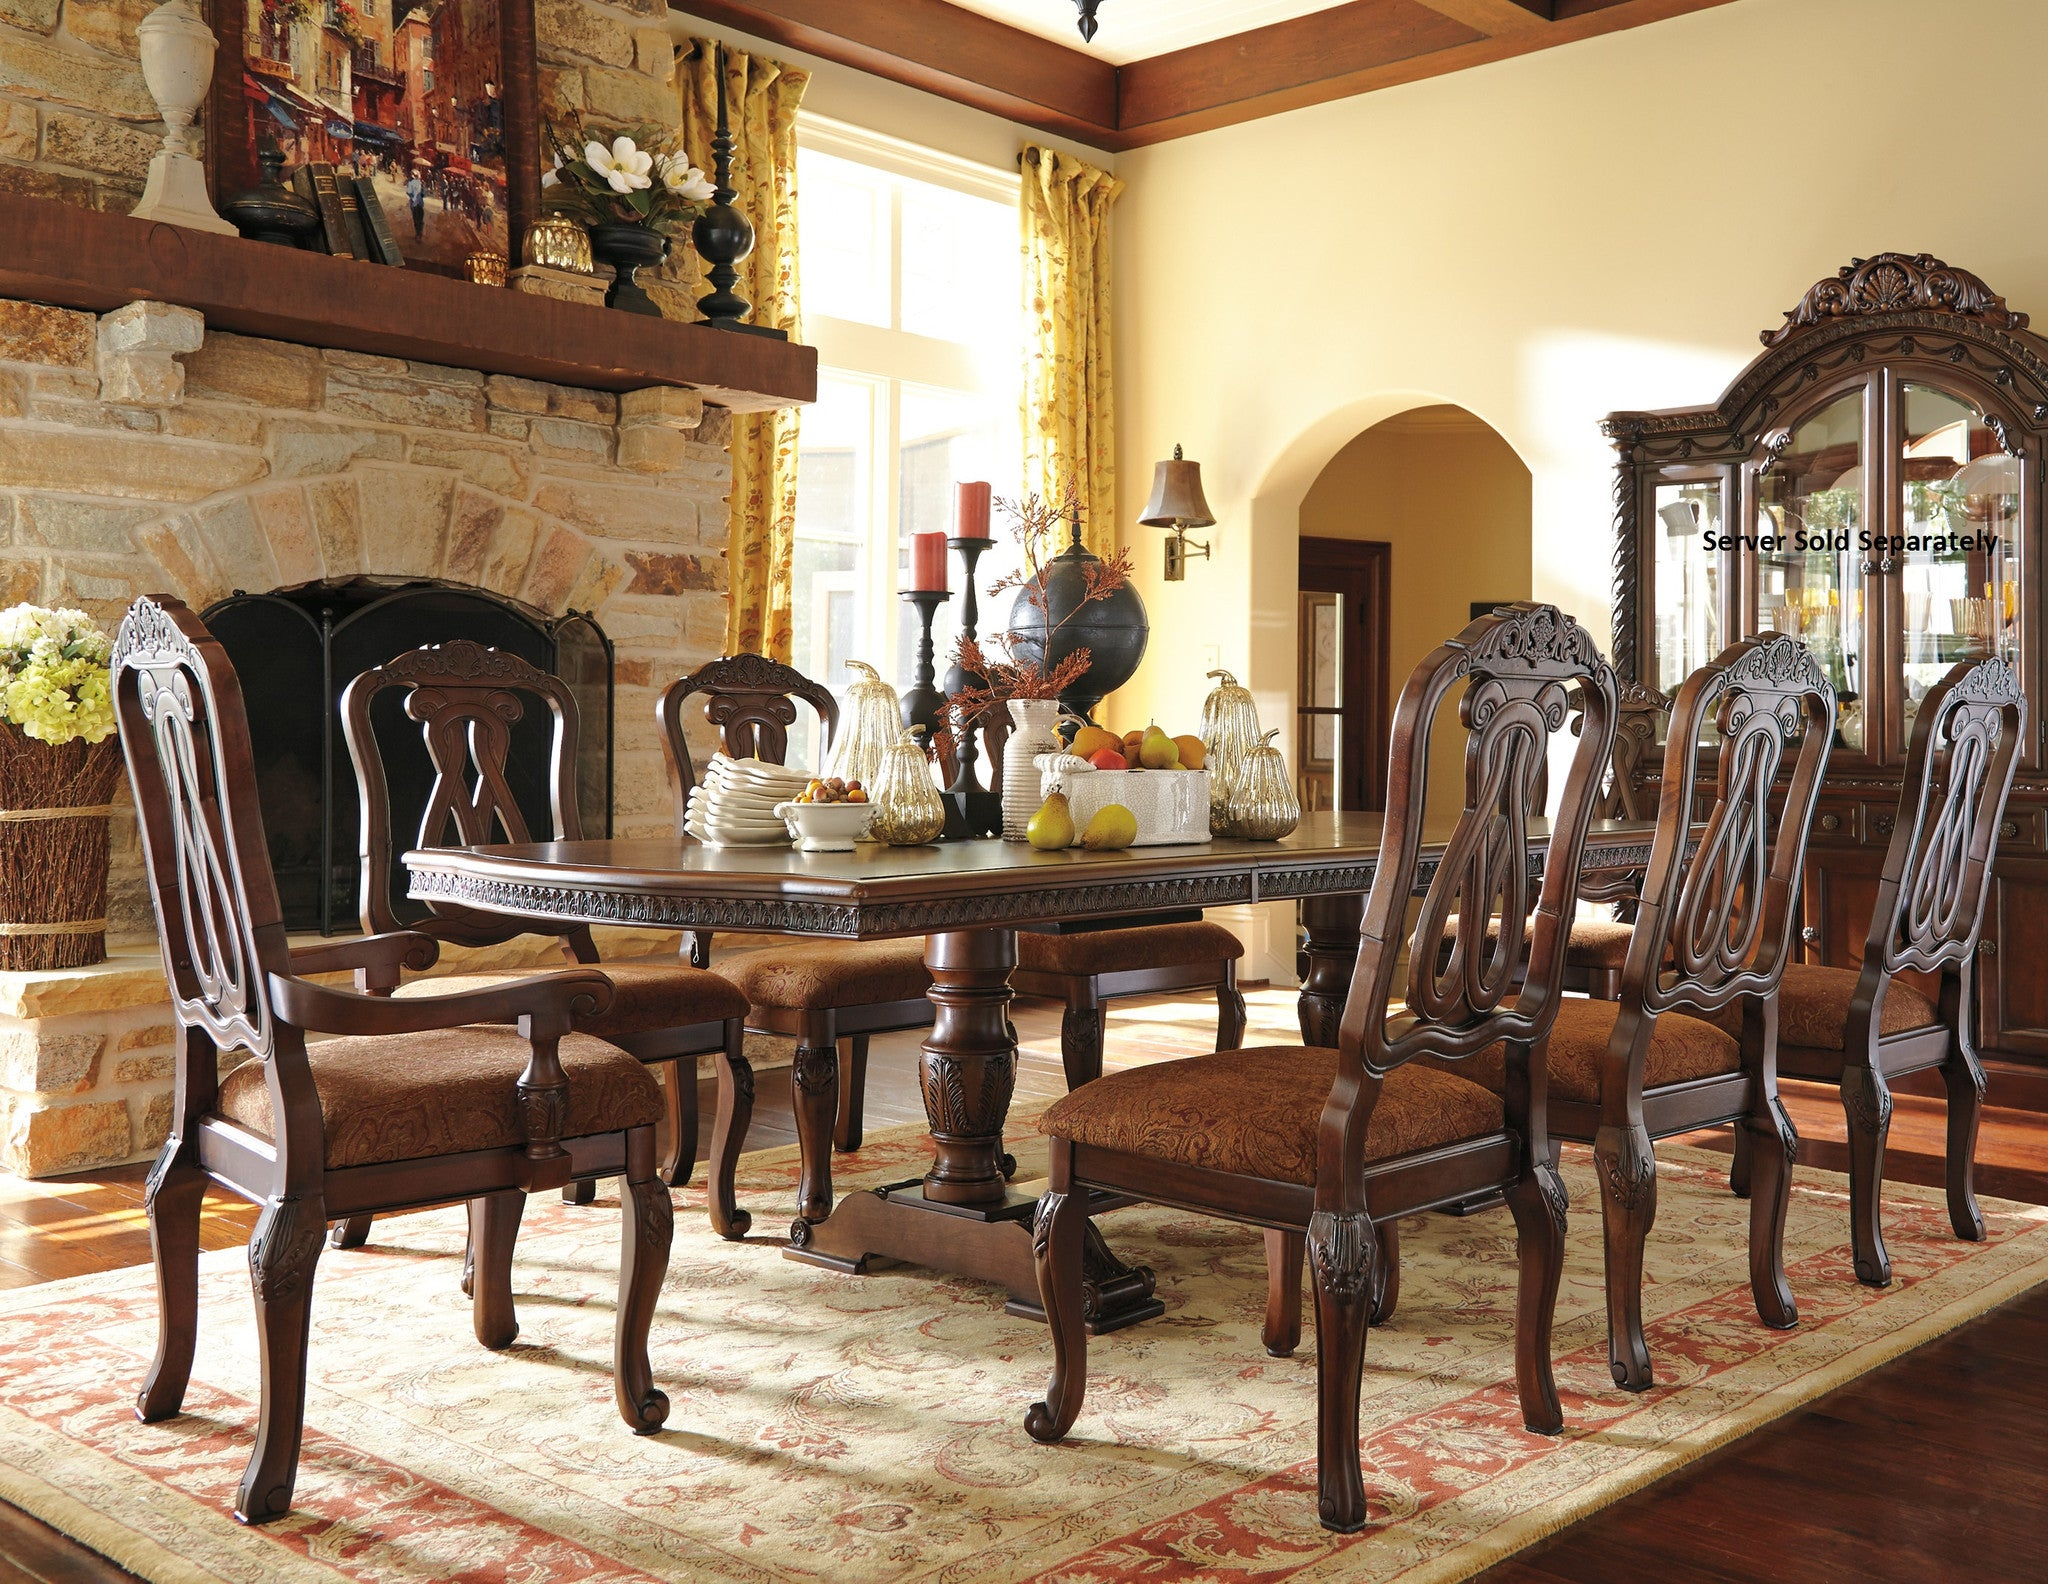 NorthShore Brown Finish Double Pedestals And Leafs Formal Dining Set- Rectangle Table- 8 Chairs